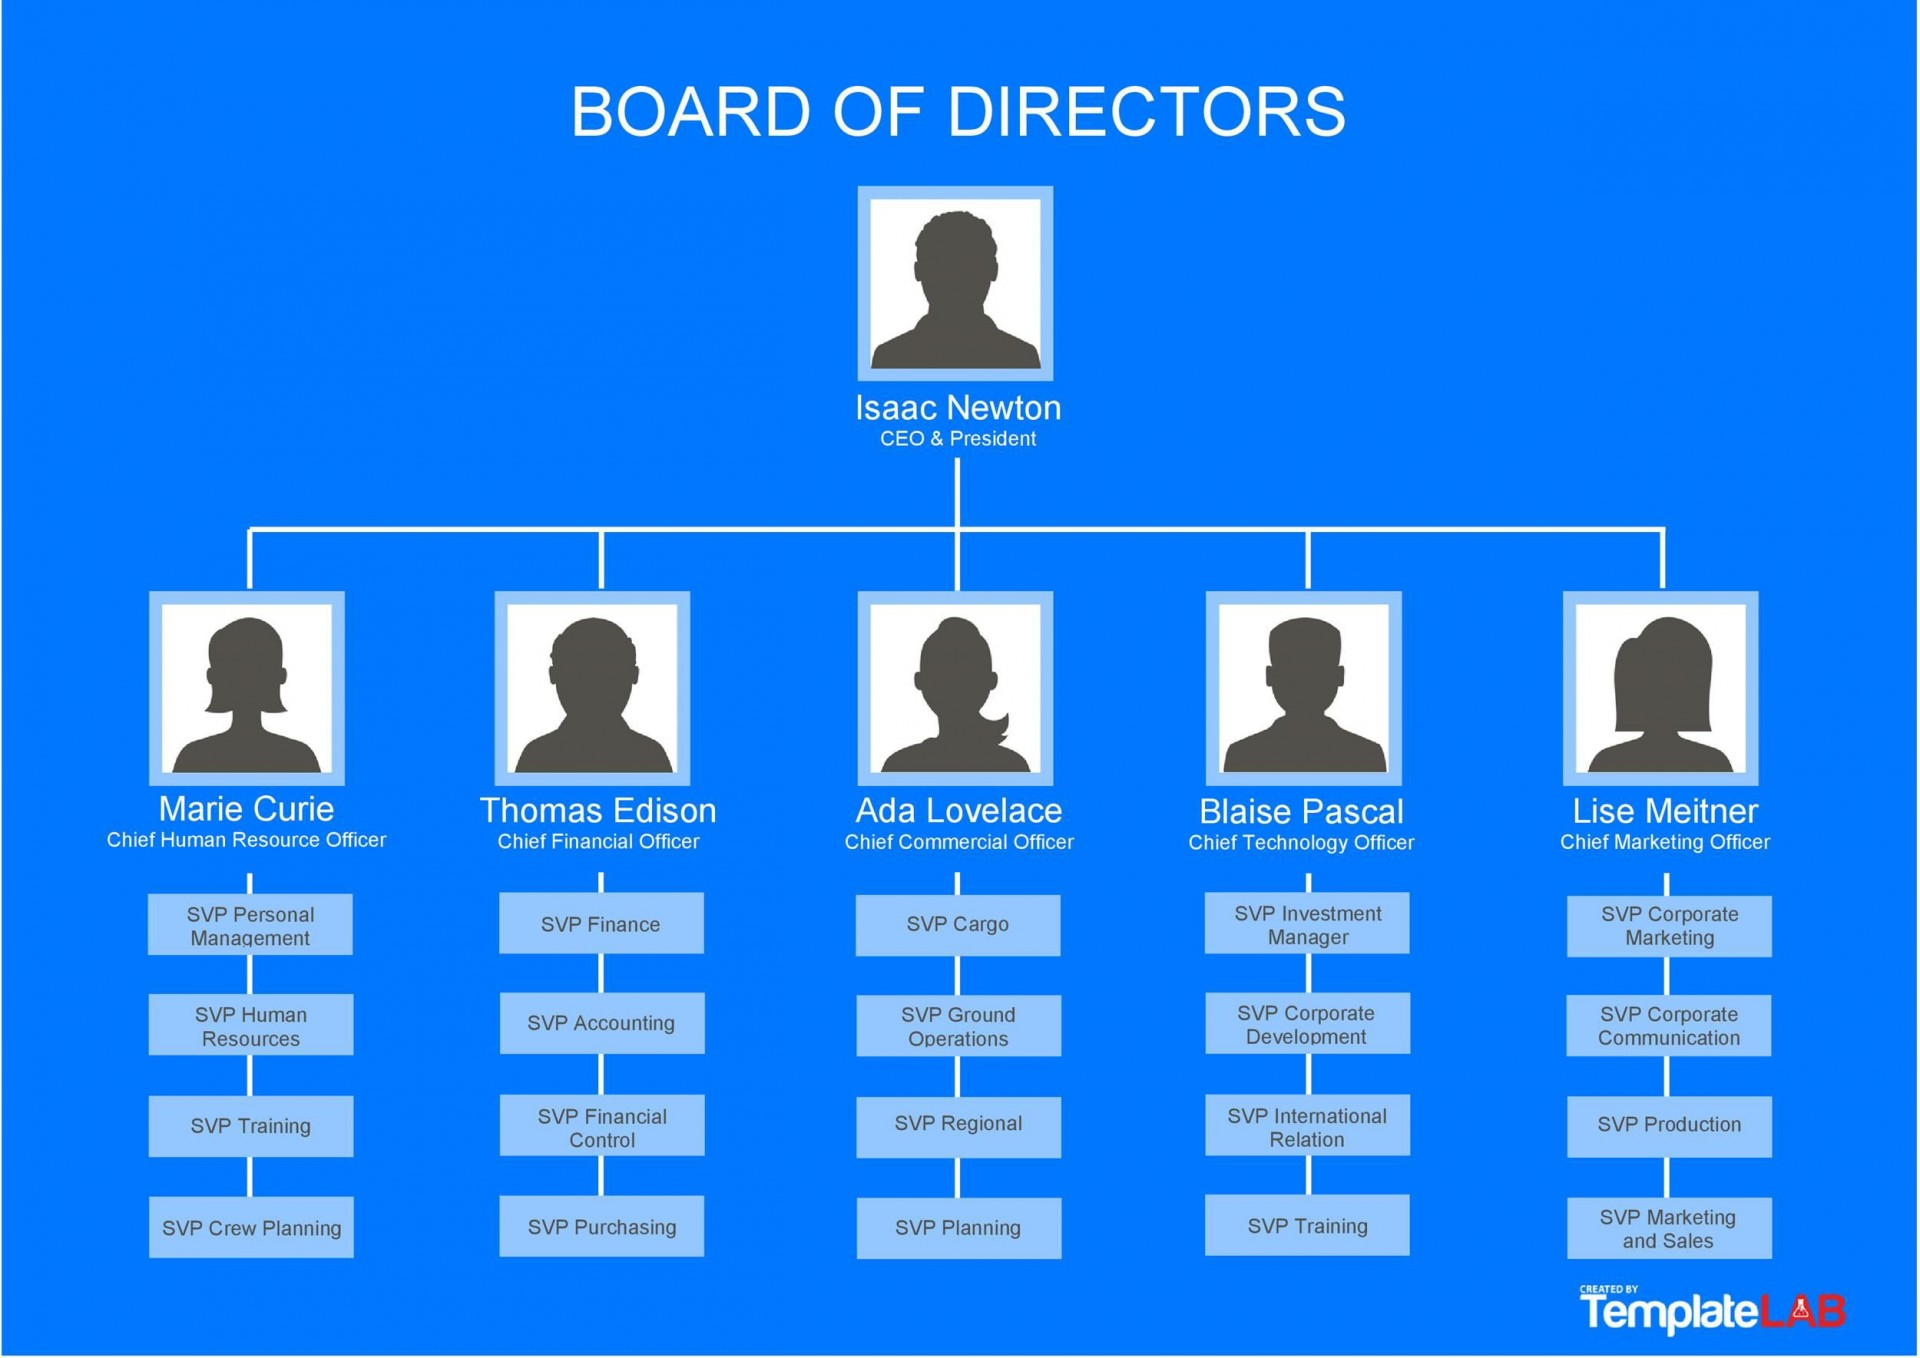 001 Stirring Organizational Chart Template Word Image  2010 2007 Free Download1920